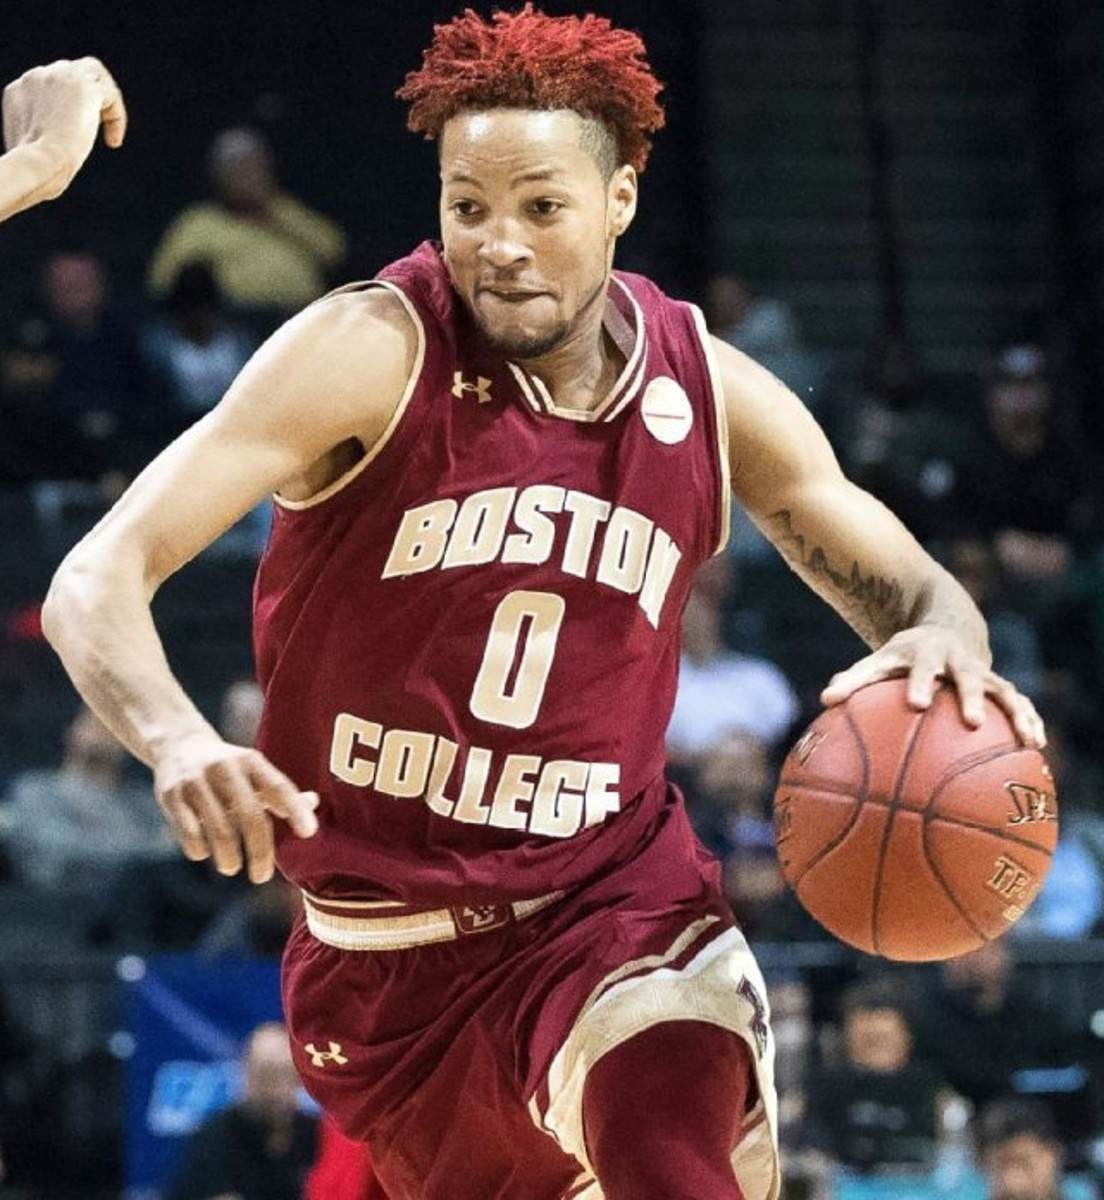 If you haven't seen Boston College play (which is totally understandable), Ky Bowman is good.